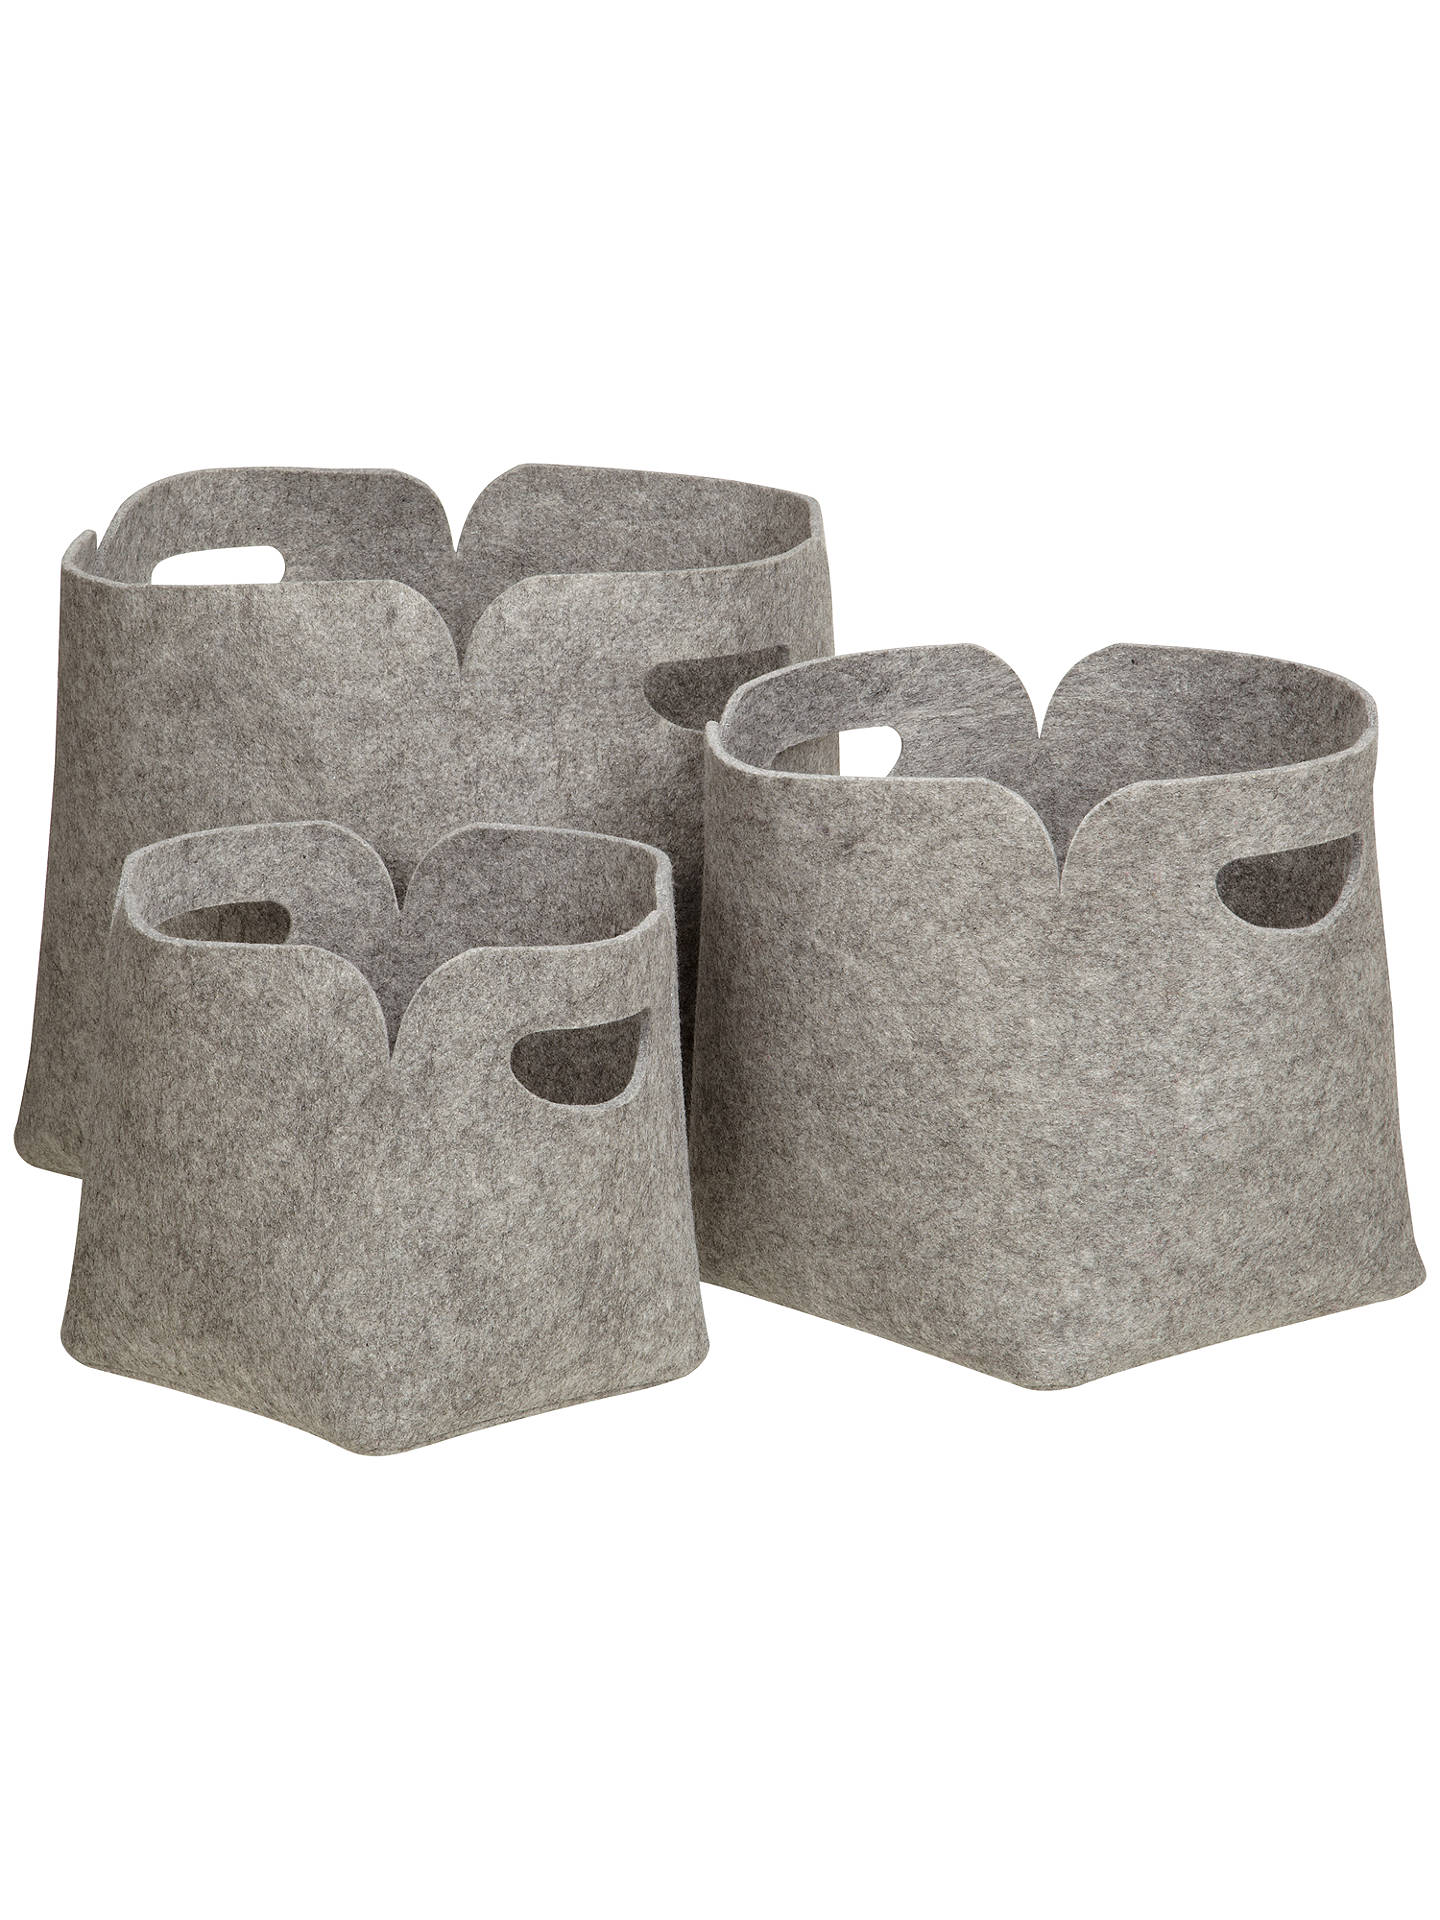 Buy John Lewis & Partners Felt Storage Boxes, Set of 3 Online at johnlewis.com